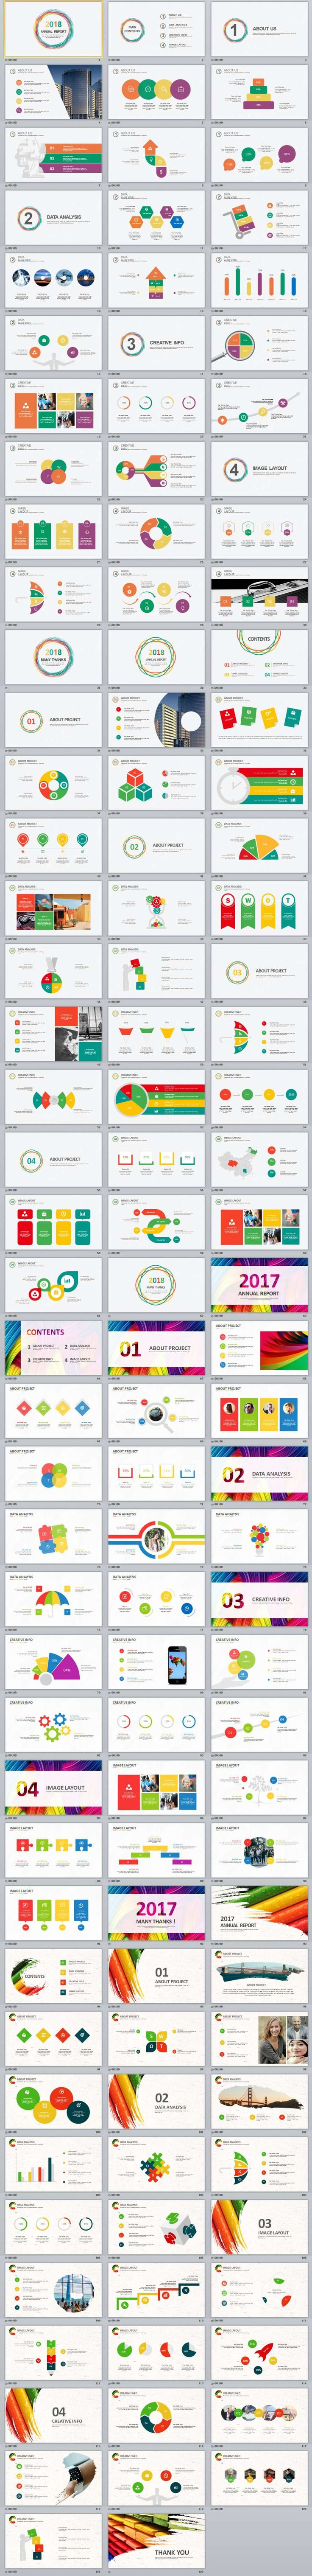 Best 25 powerpoint maker ideas on pinterest teacher resources 4 in 1 multicolor annual report powerpoint templates toneelgroepblik Image collections